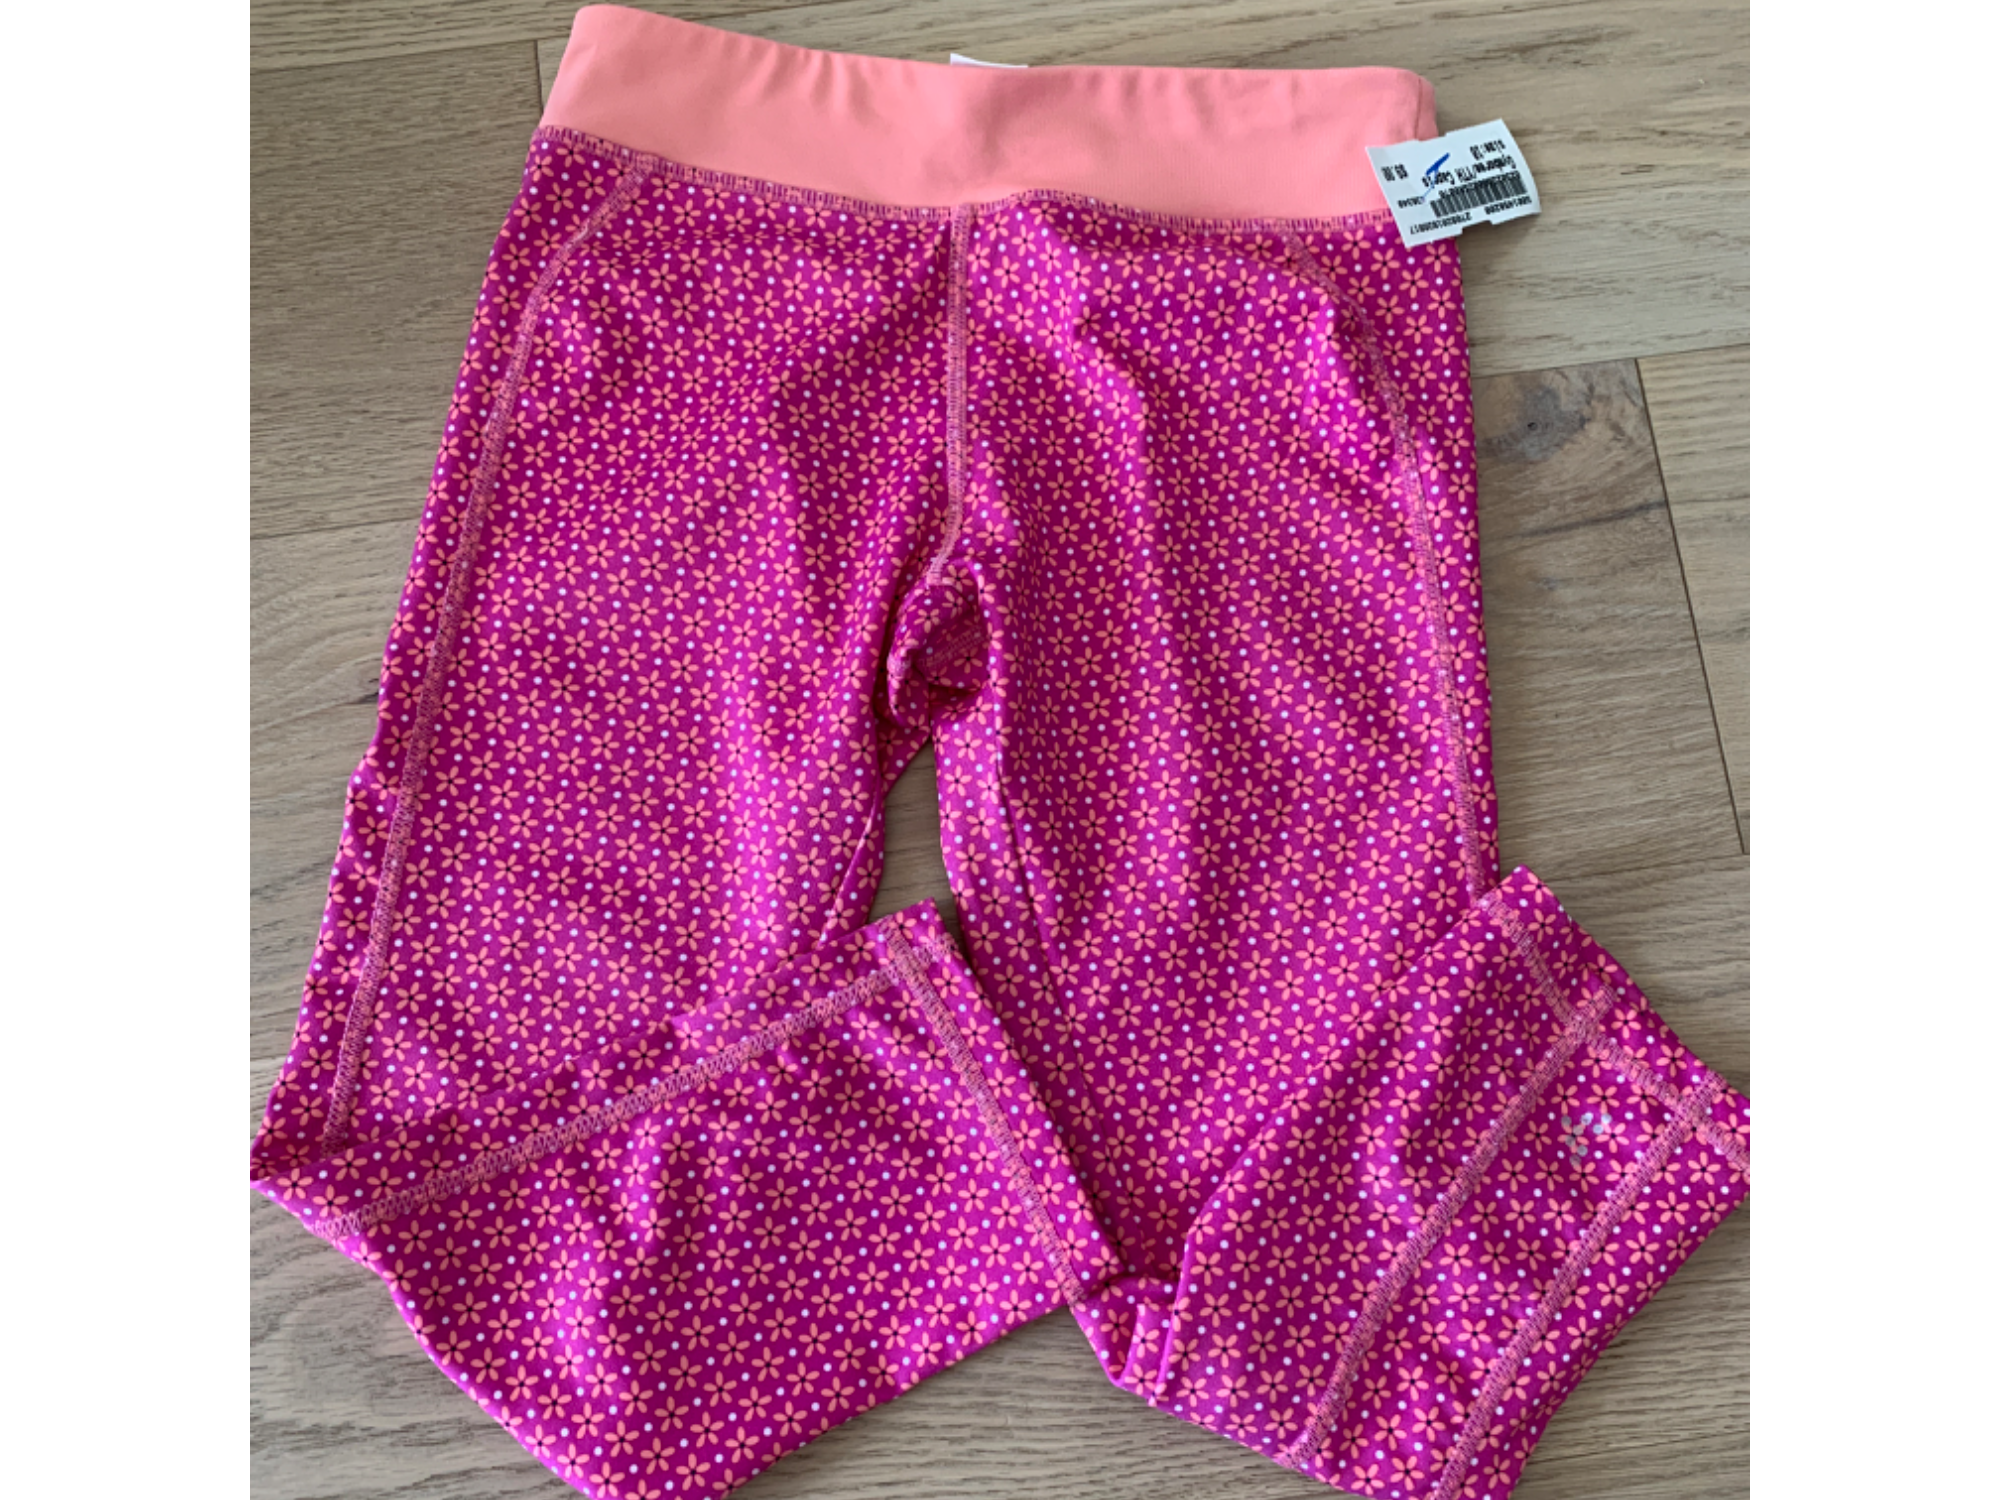 Gymboree Youth Bottoms Size 10